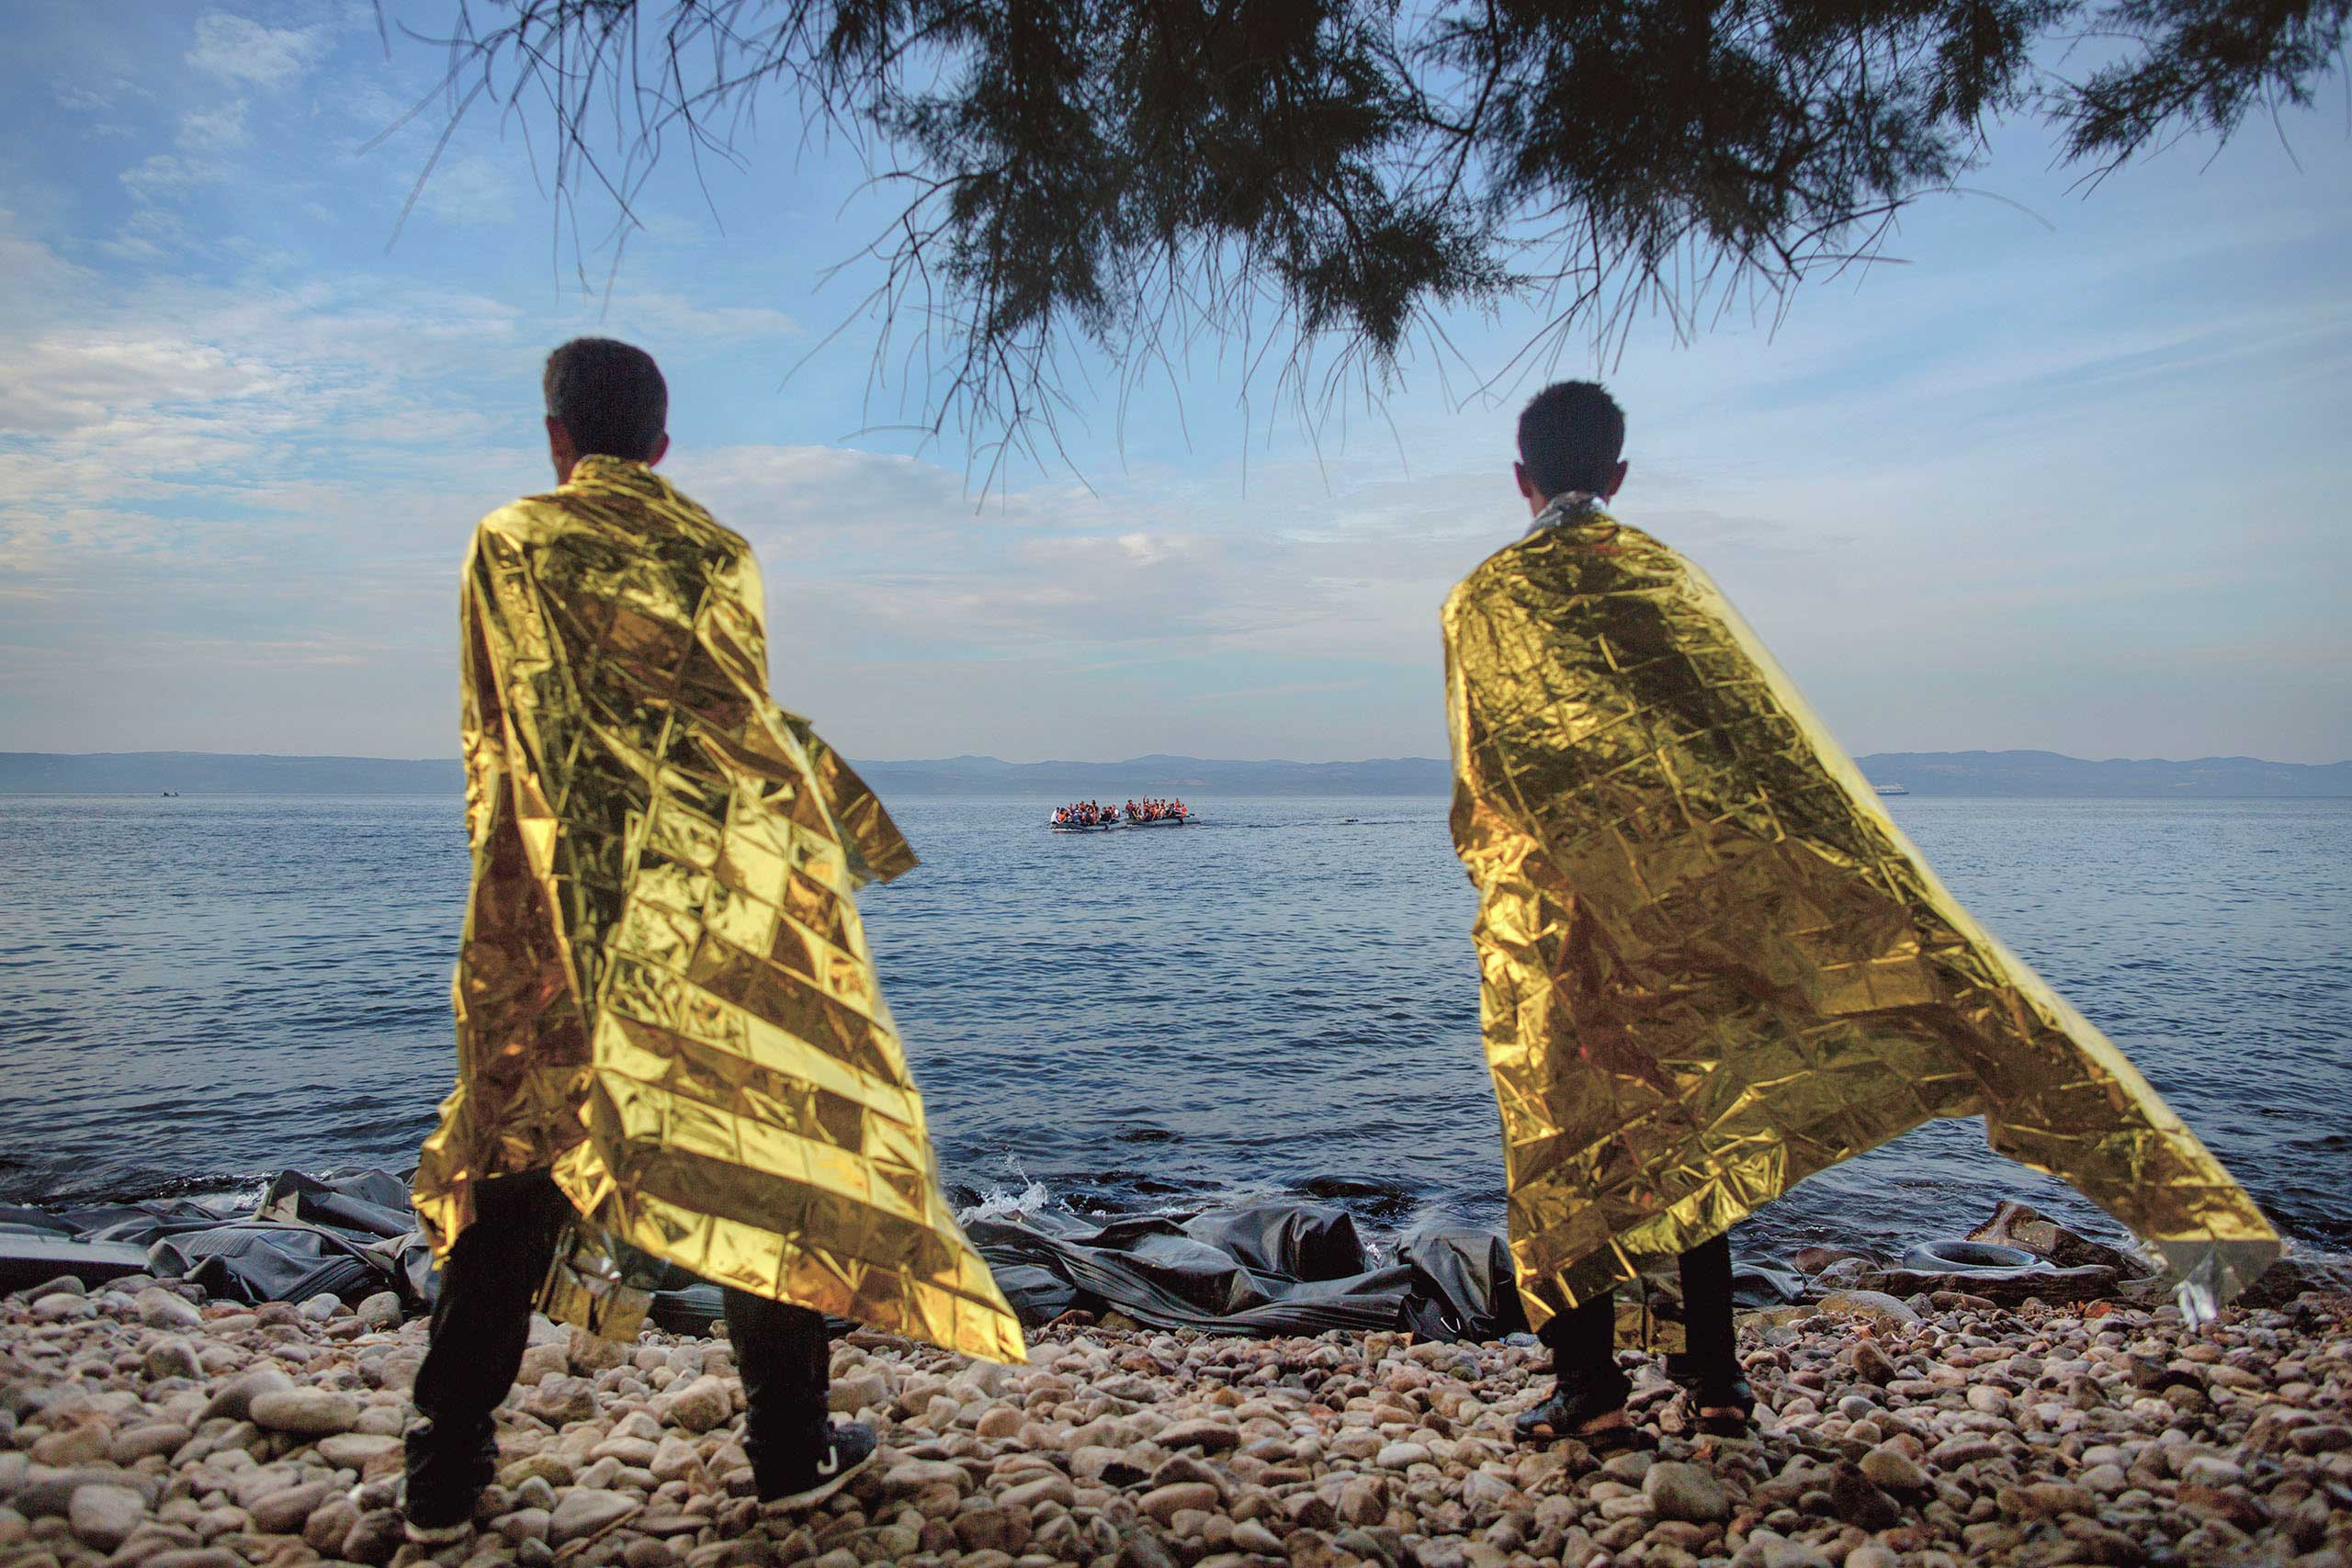 Verdens Gang:  Escape From War                               Two men who have arrived on the Greek island of Lesbos use foil blankets to keep warm  as they watch Syrian refugees approaching the beach, Sept. 9, 2015.